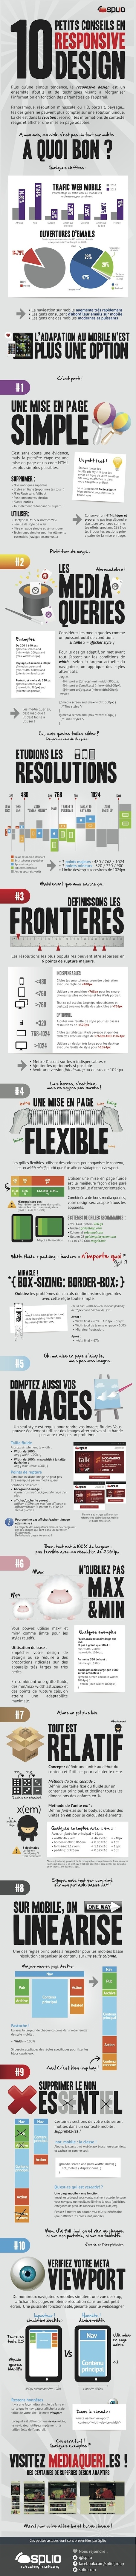 My Infographics | Responsive design & mobile first | Scoop.it